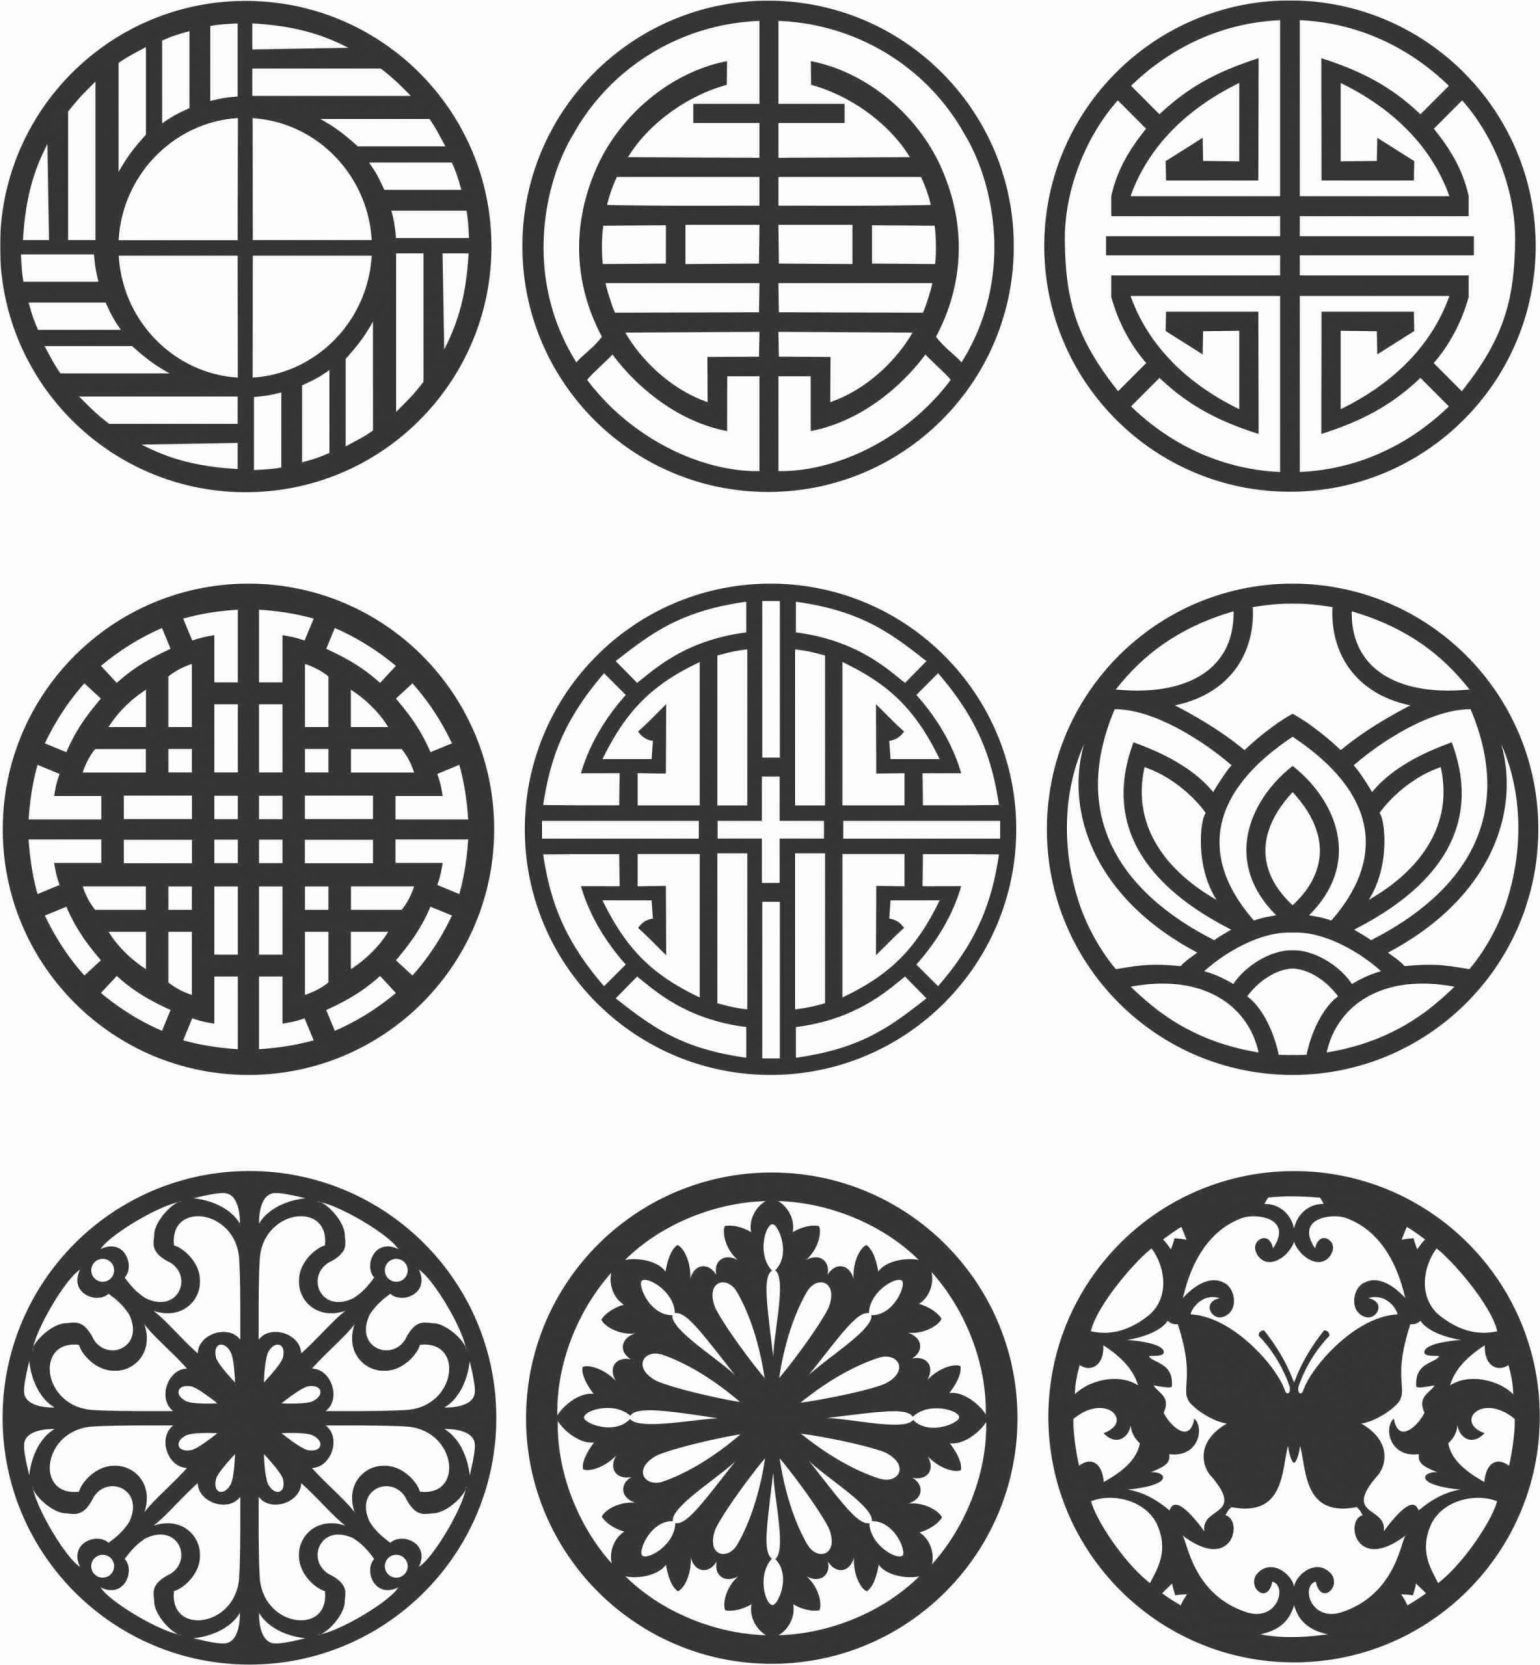 Floral Screen Patterns Design 140 Free DXF File